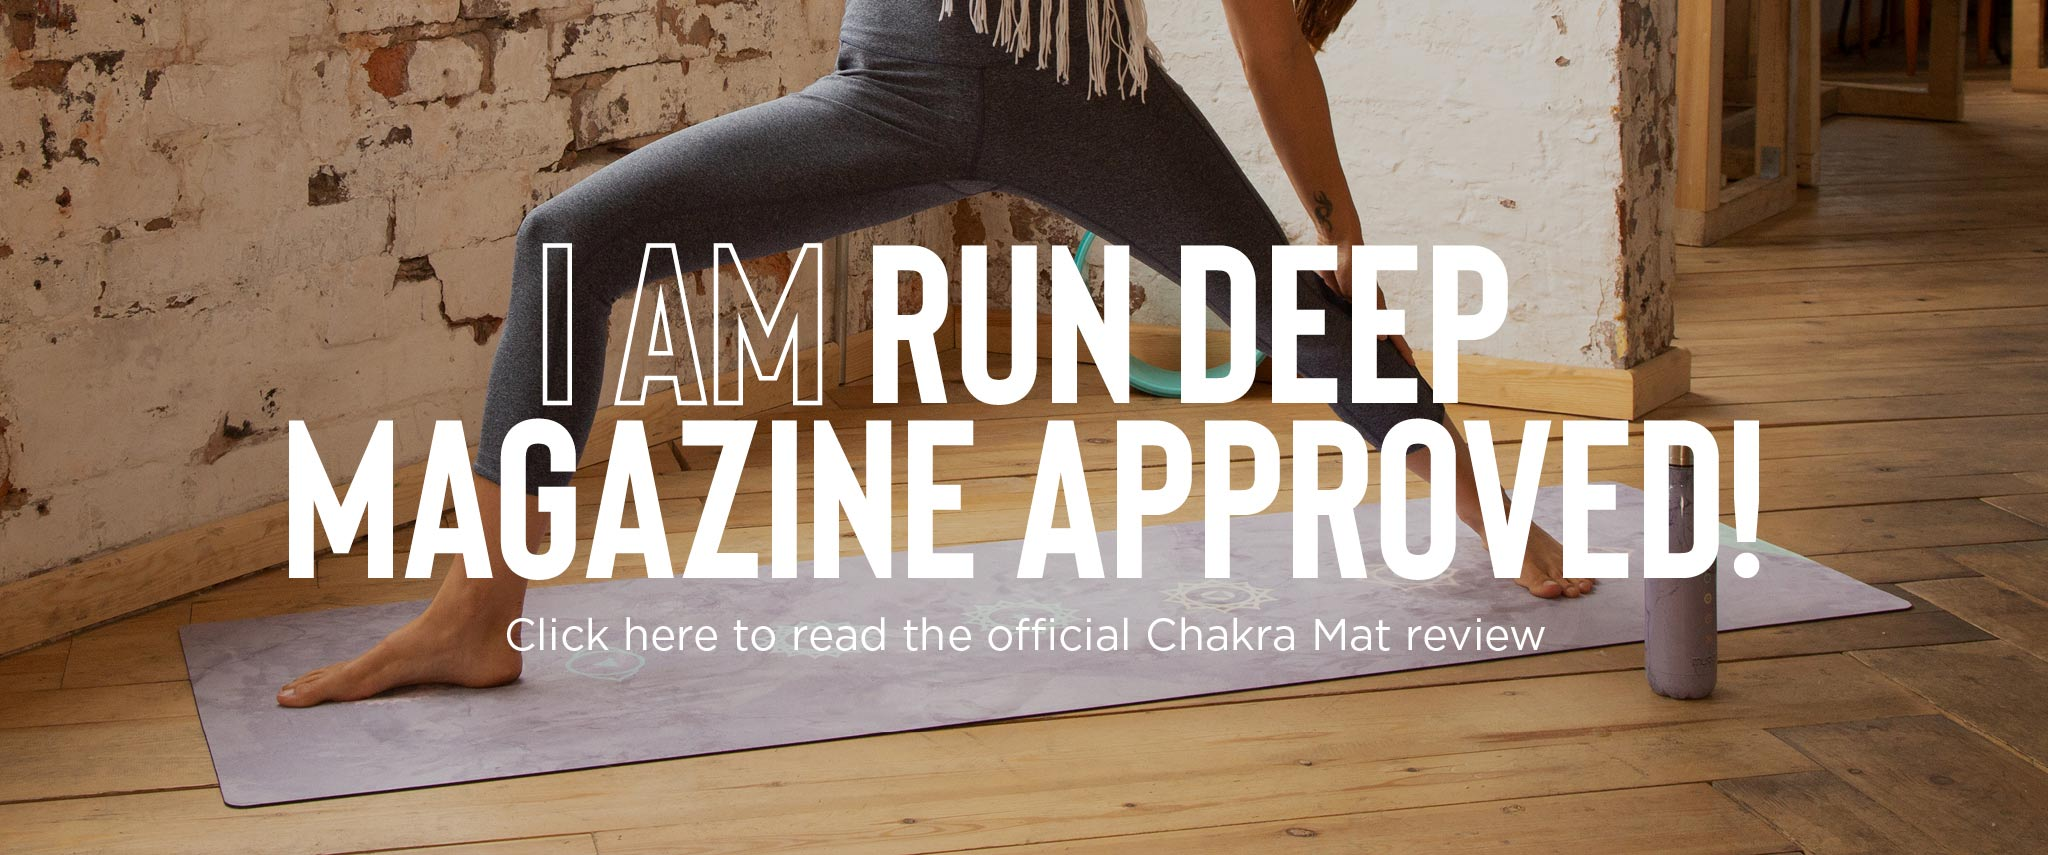 I am Run Deep Magazine Approved!